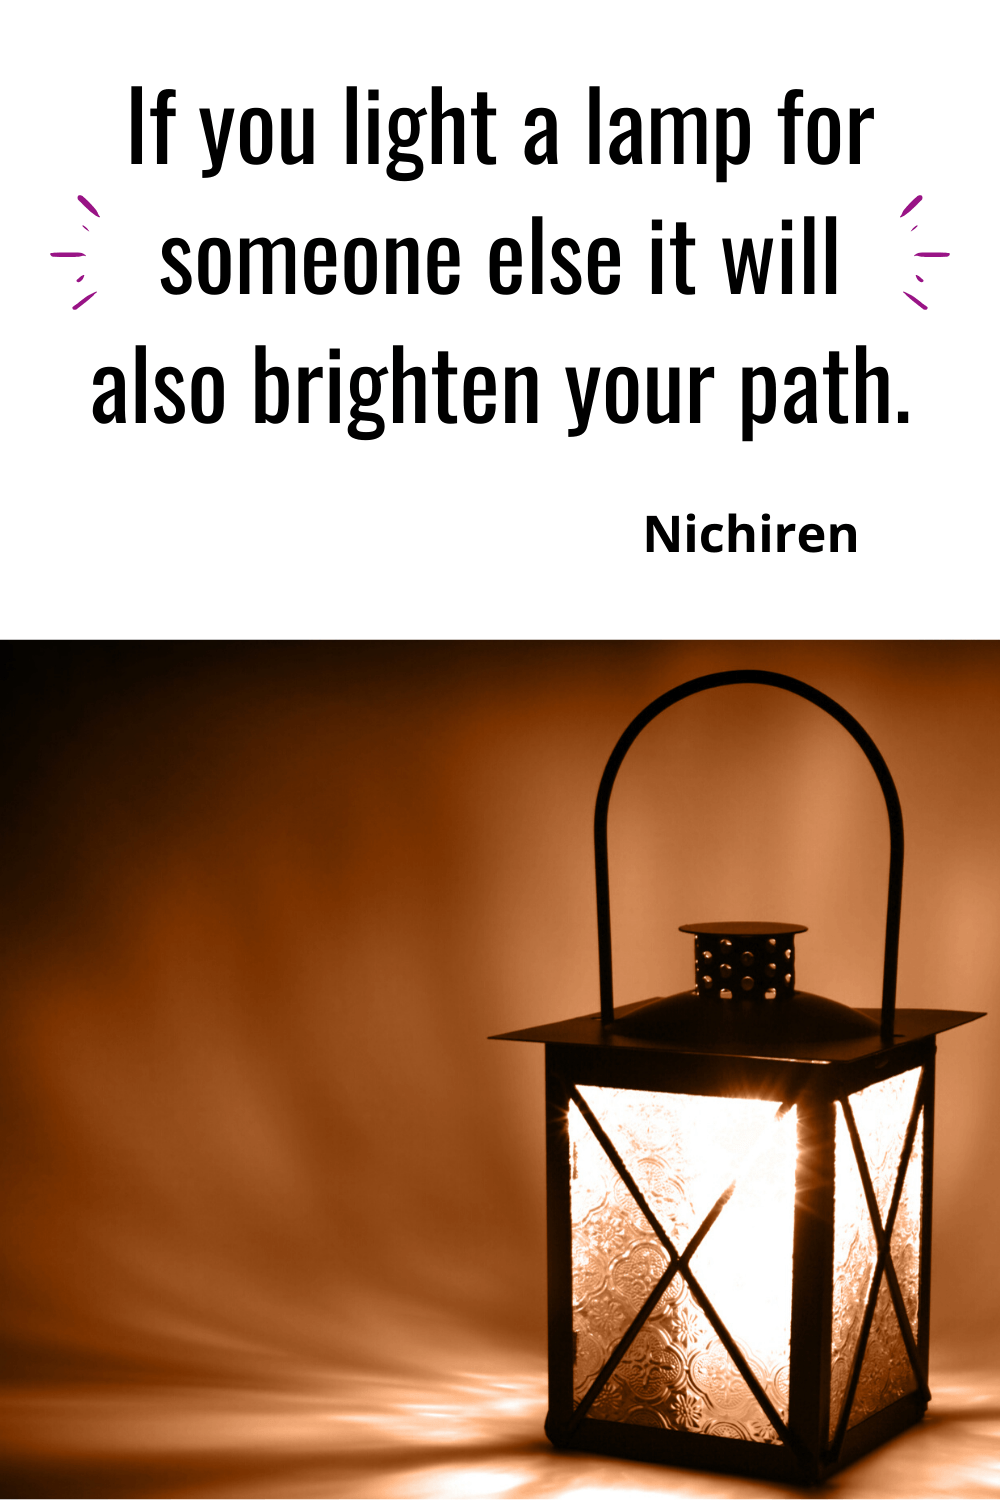 If you light a lamp for someone else it will also brighten your path. Nichiren